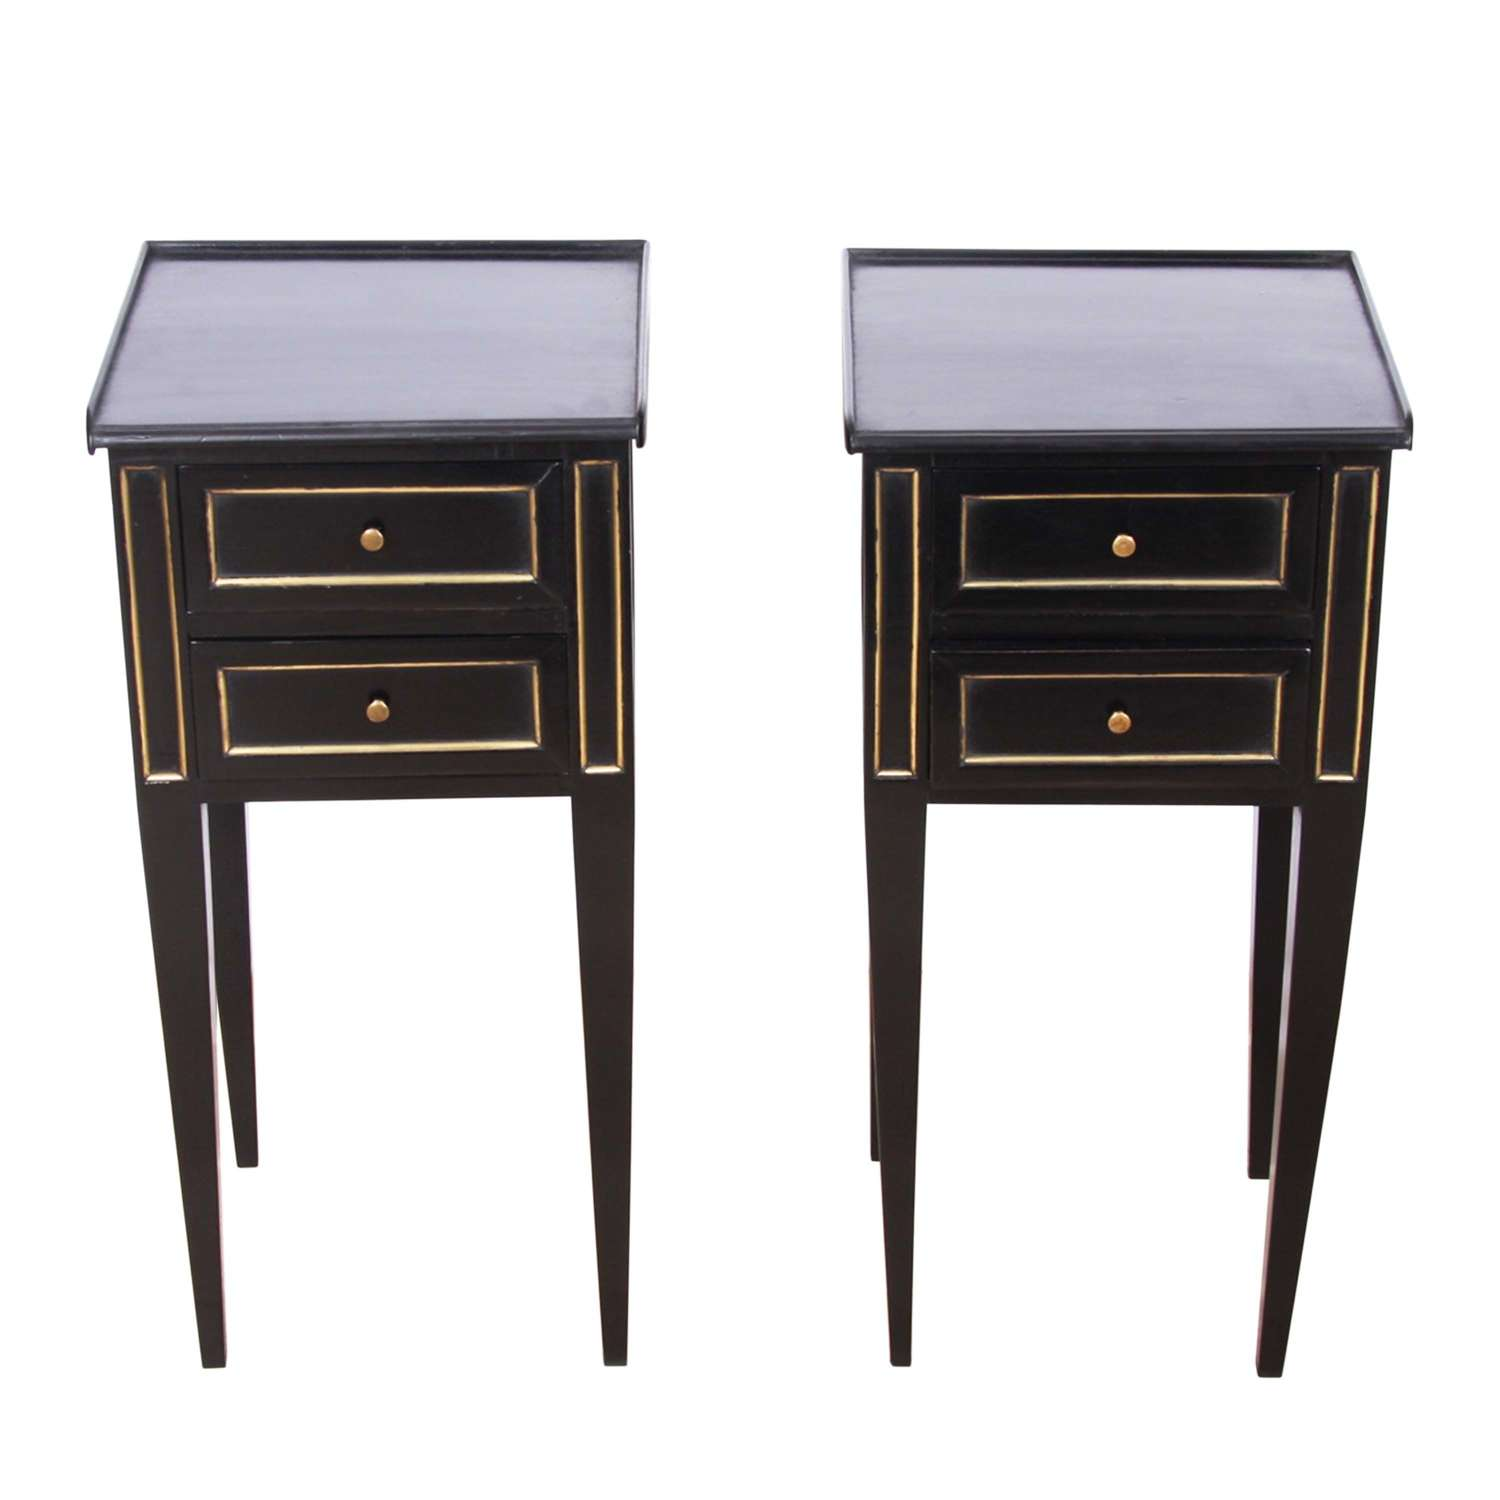 Pair of Early 20th C Ebonised Nightstands